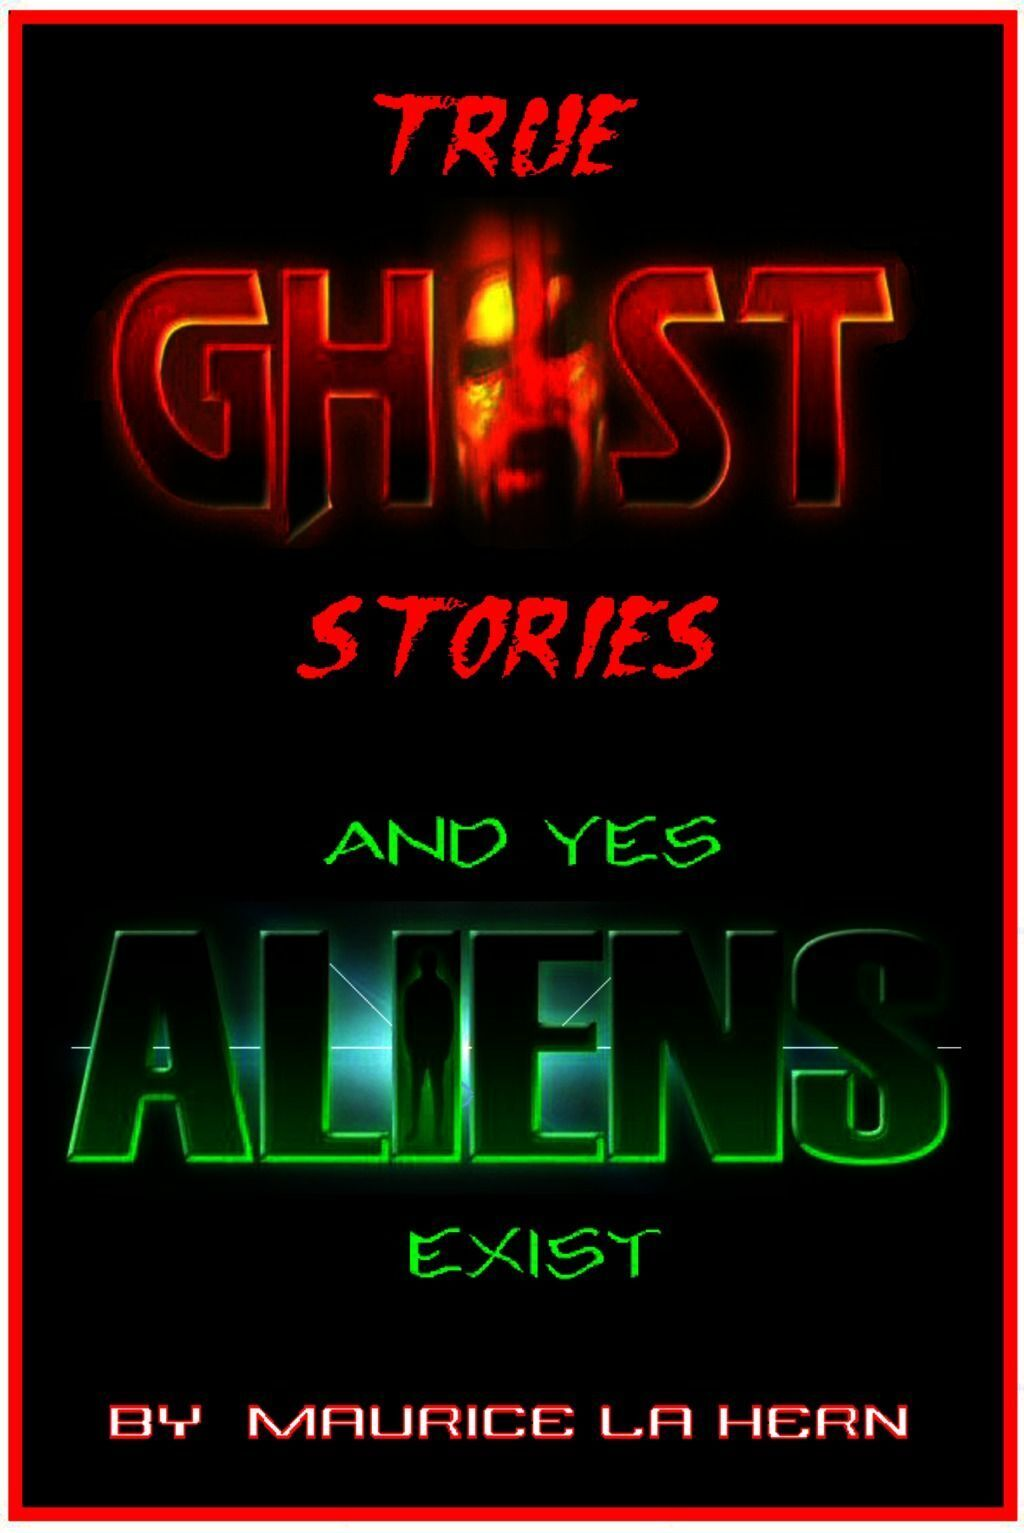 True Ghost Stories And Yes Aliens Exist